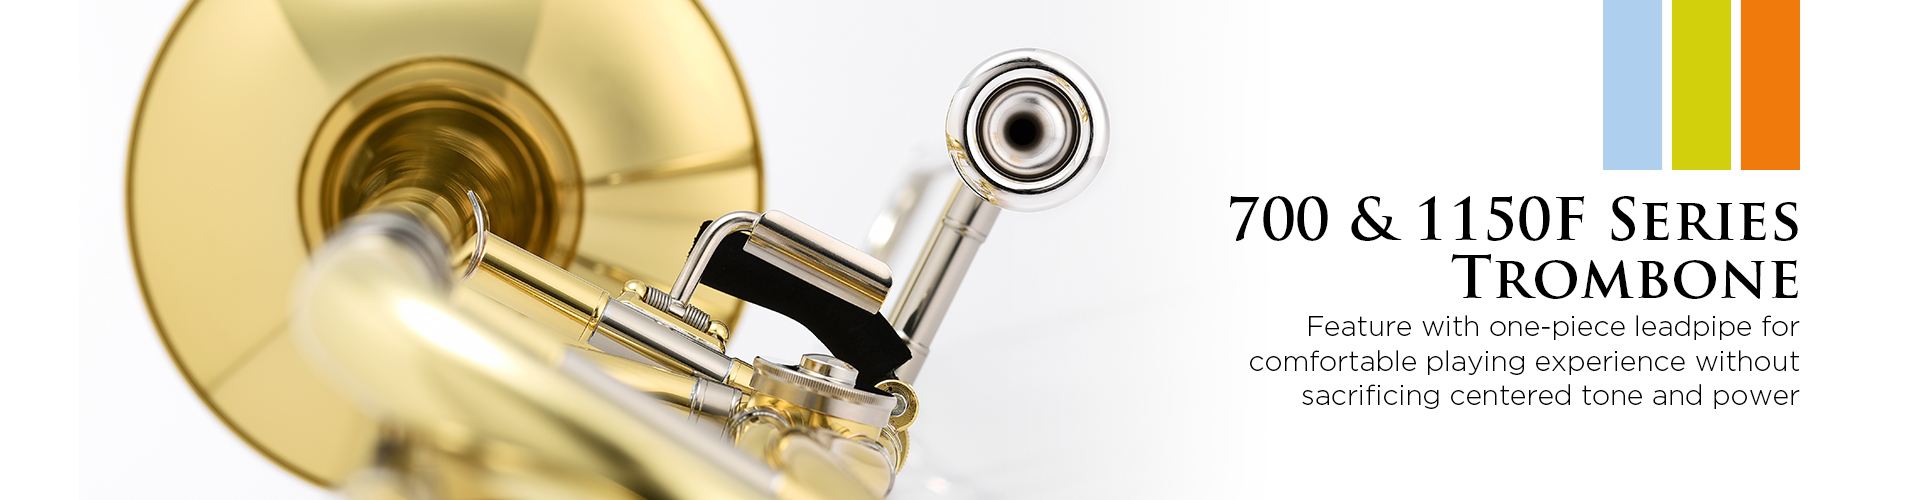 One-piece Leadpipe Trombone slide